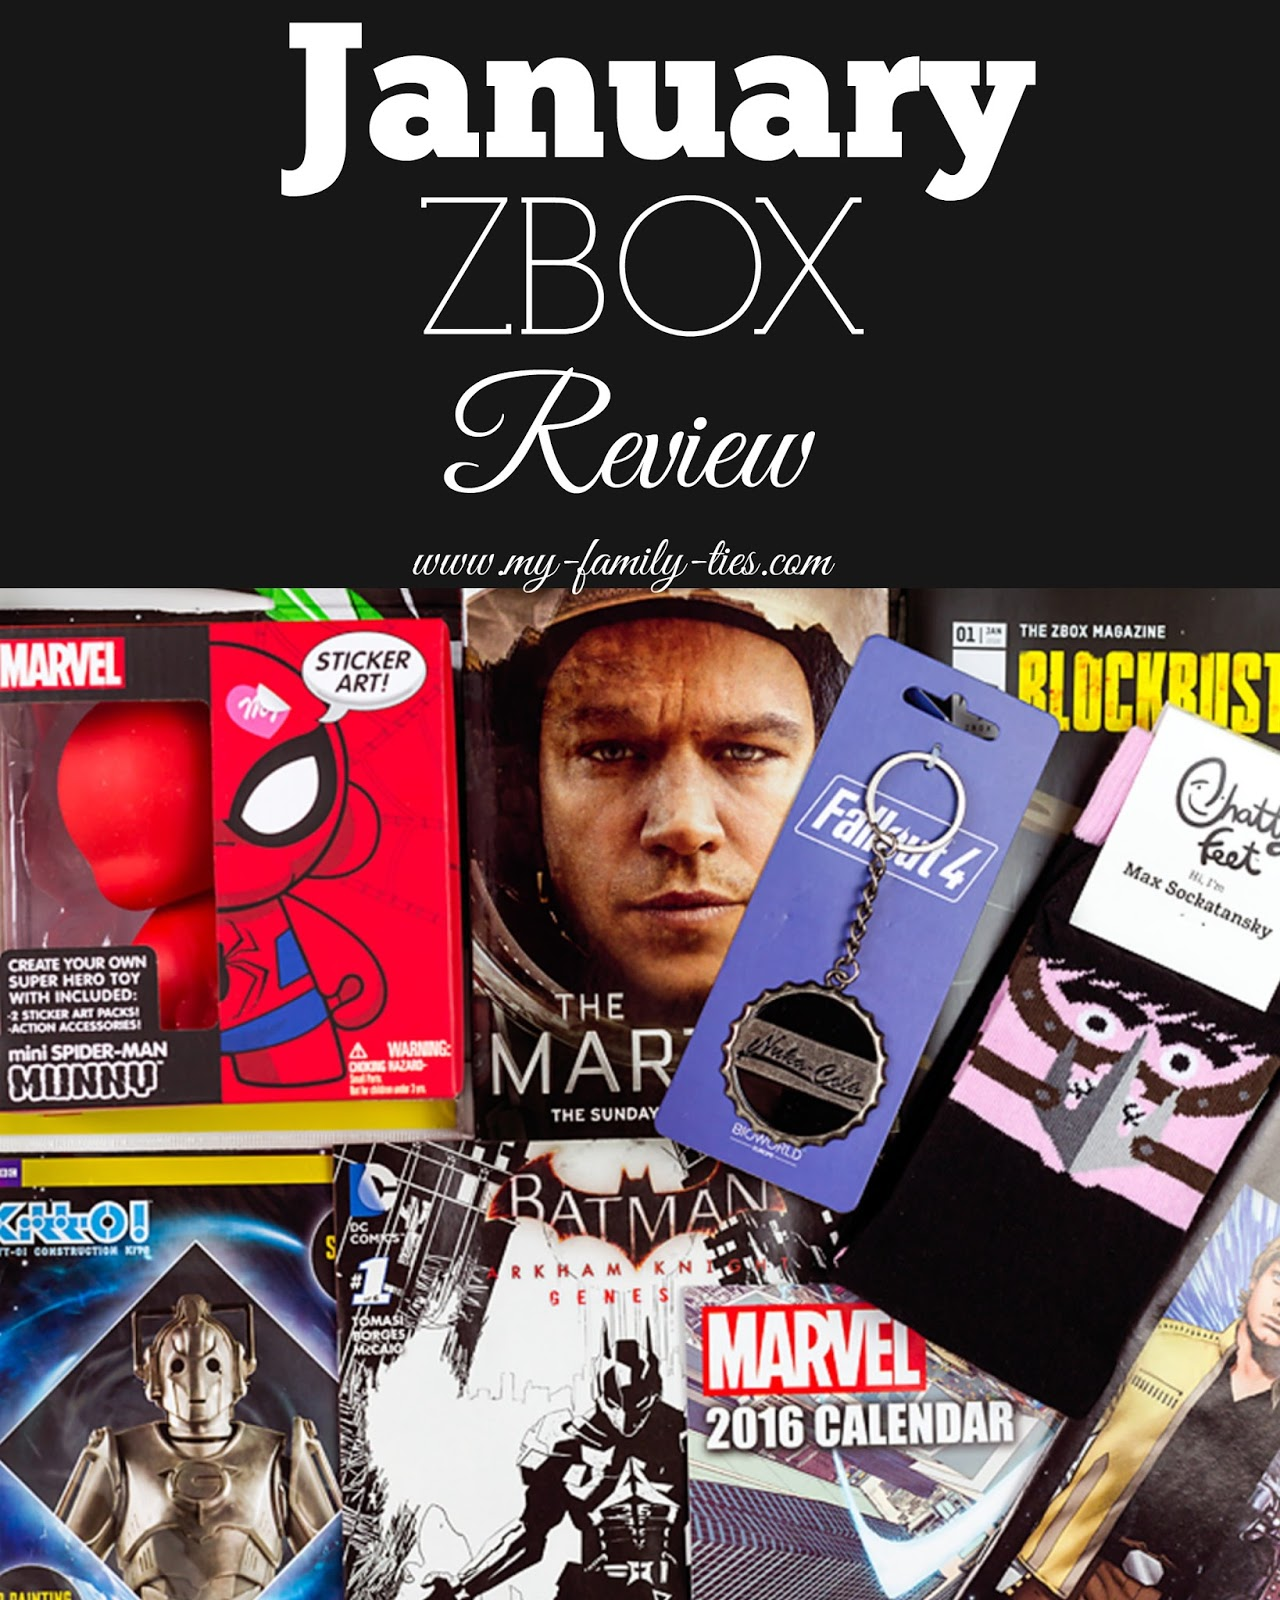 January 2016 ZBOX review by My Family Ties Blog www.my-family-ties.com